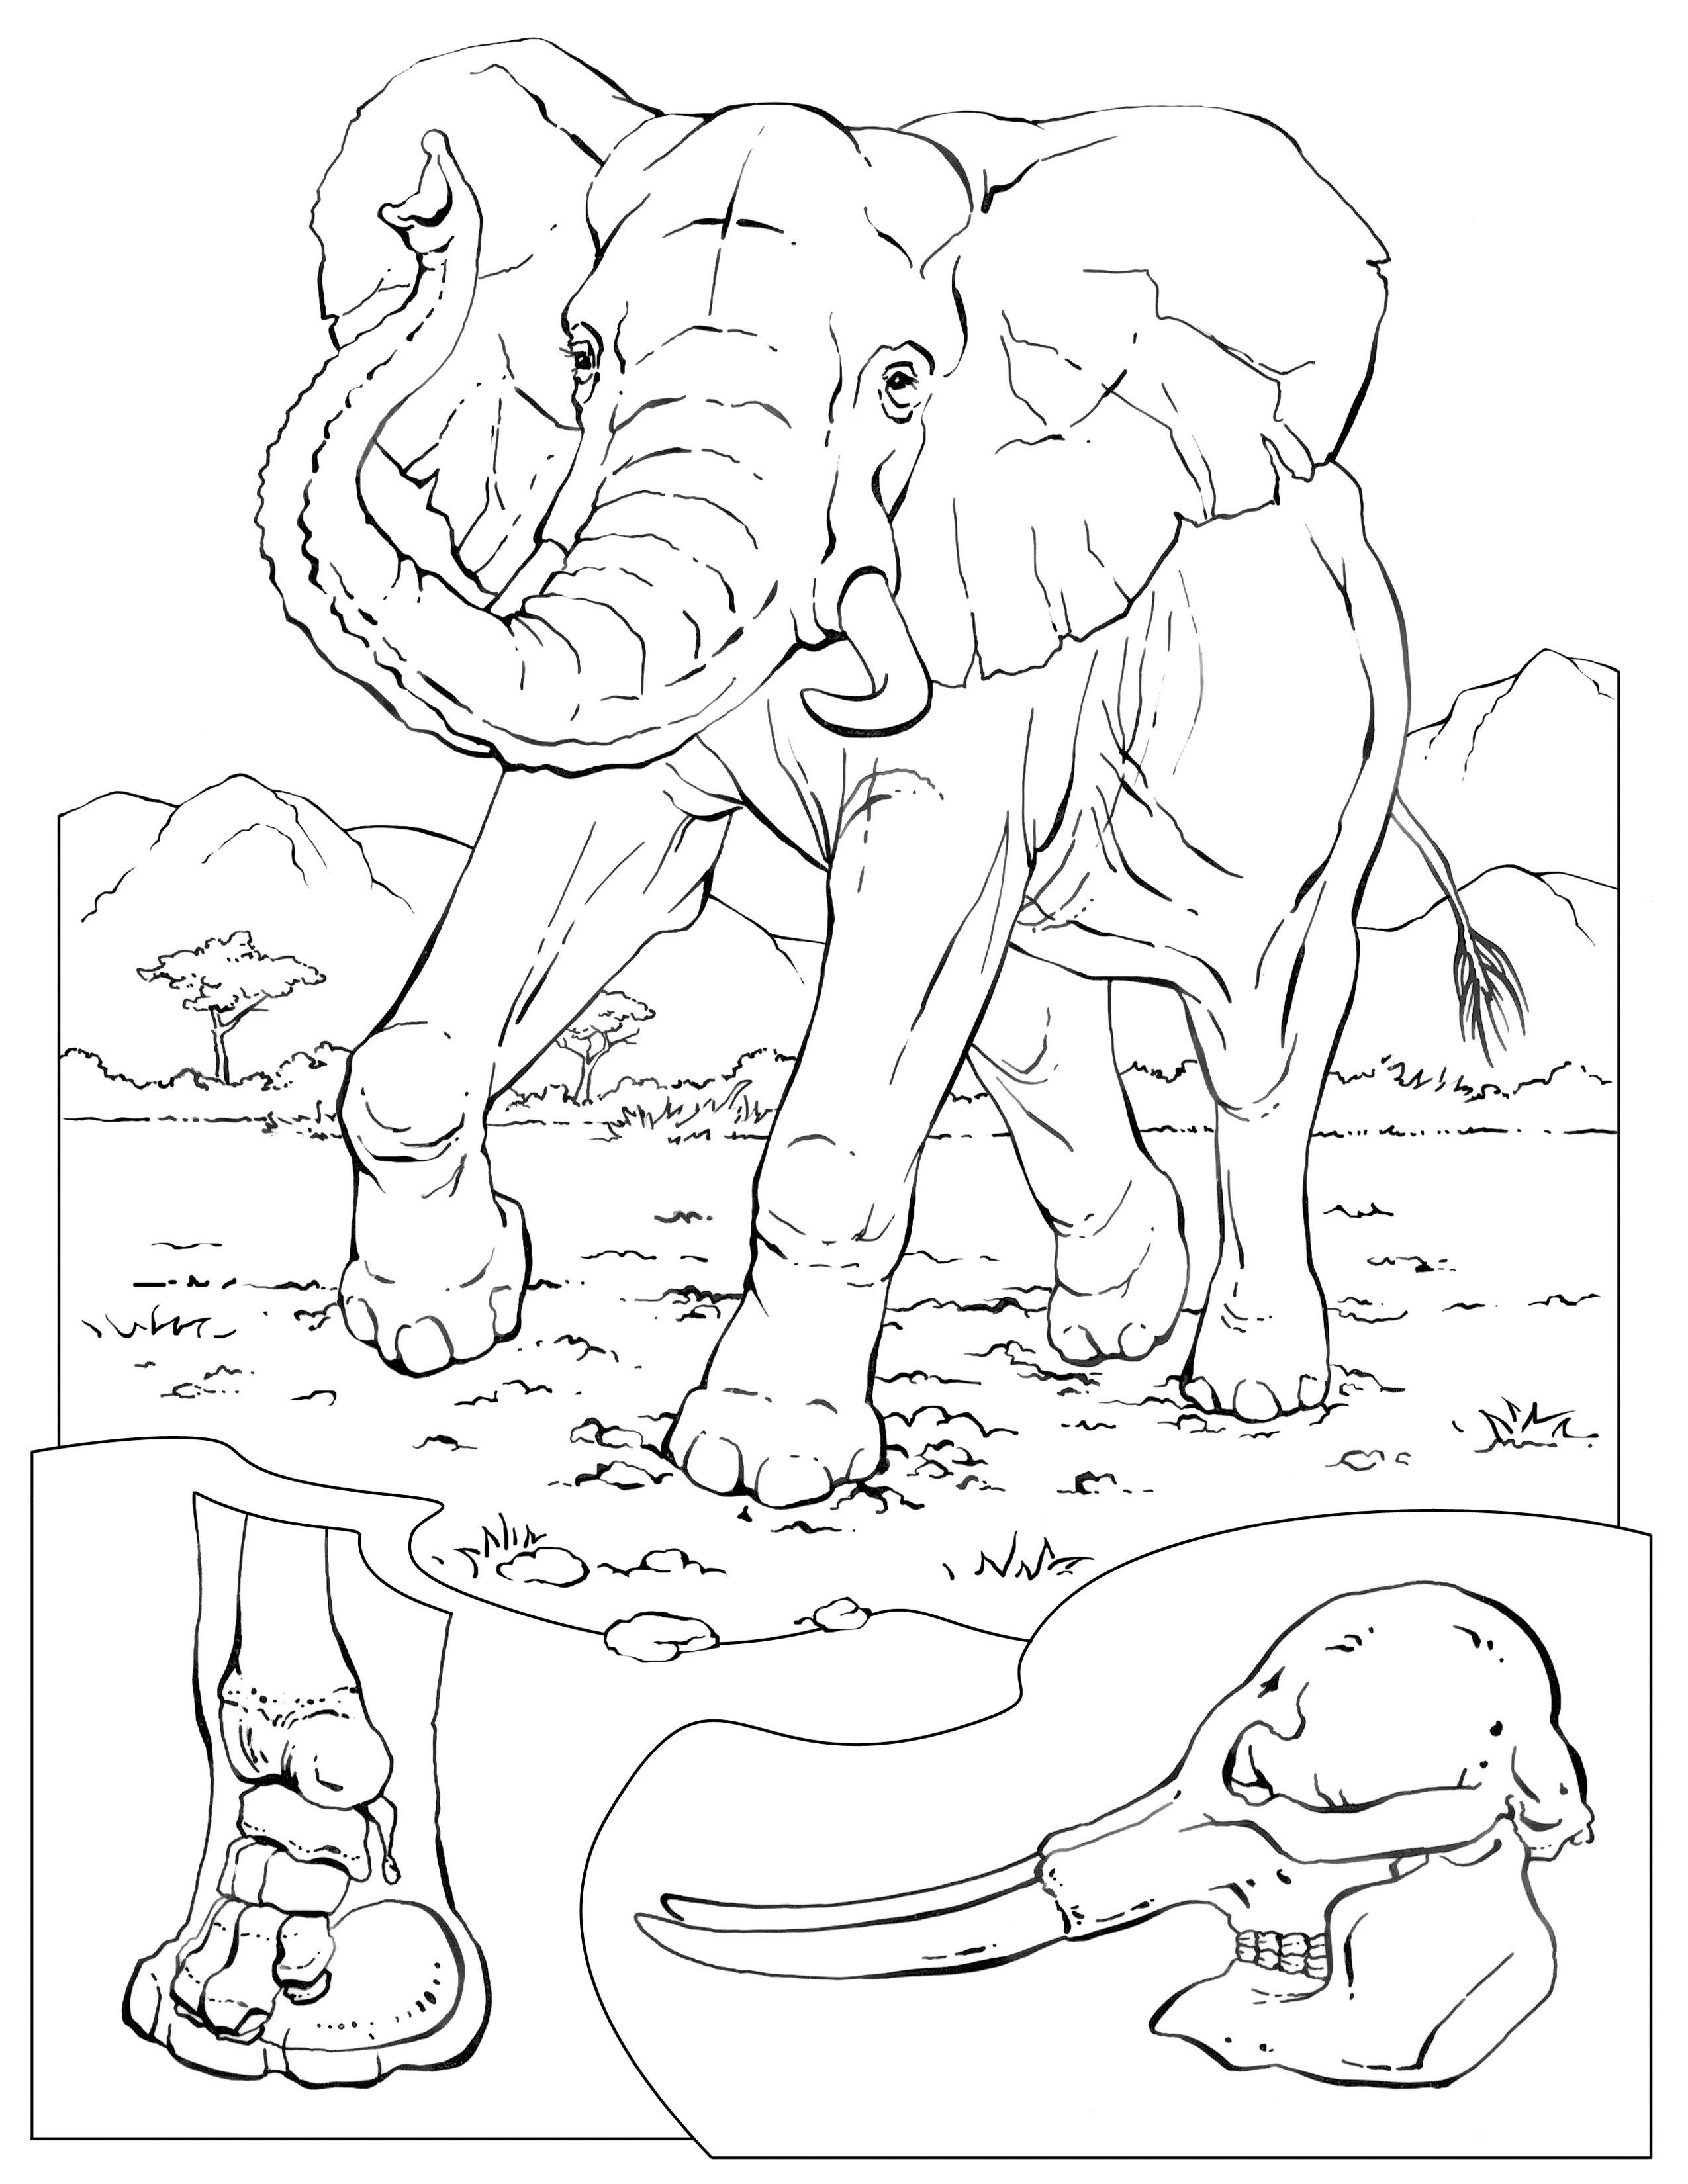 Coloring Pages – Wildlife Research & Conservation